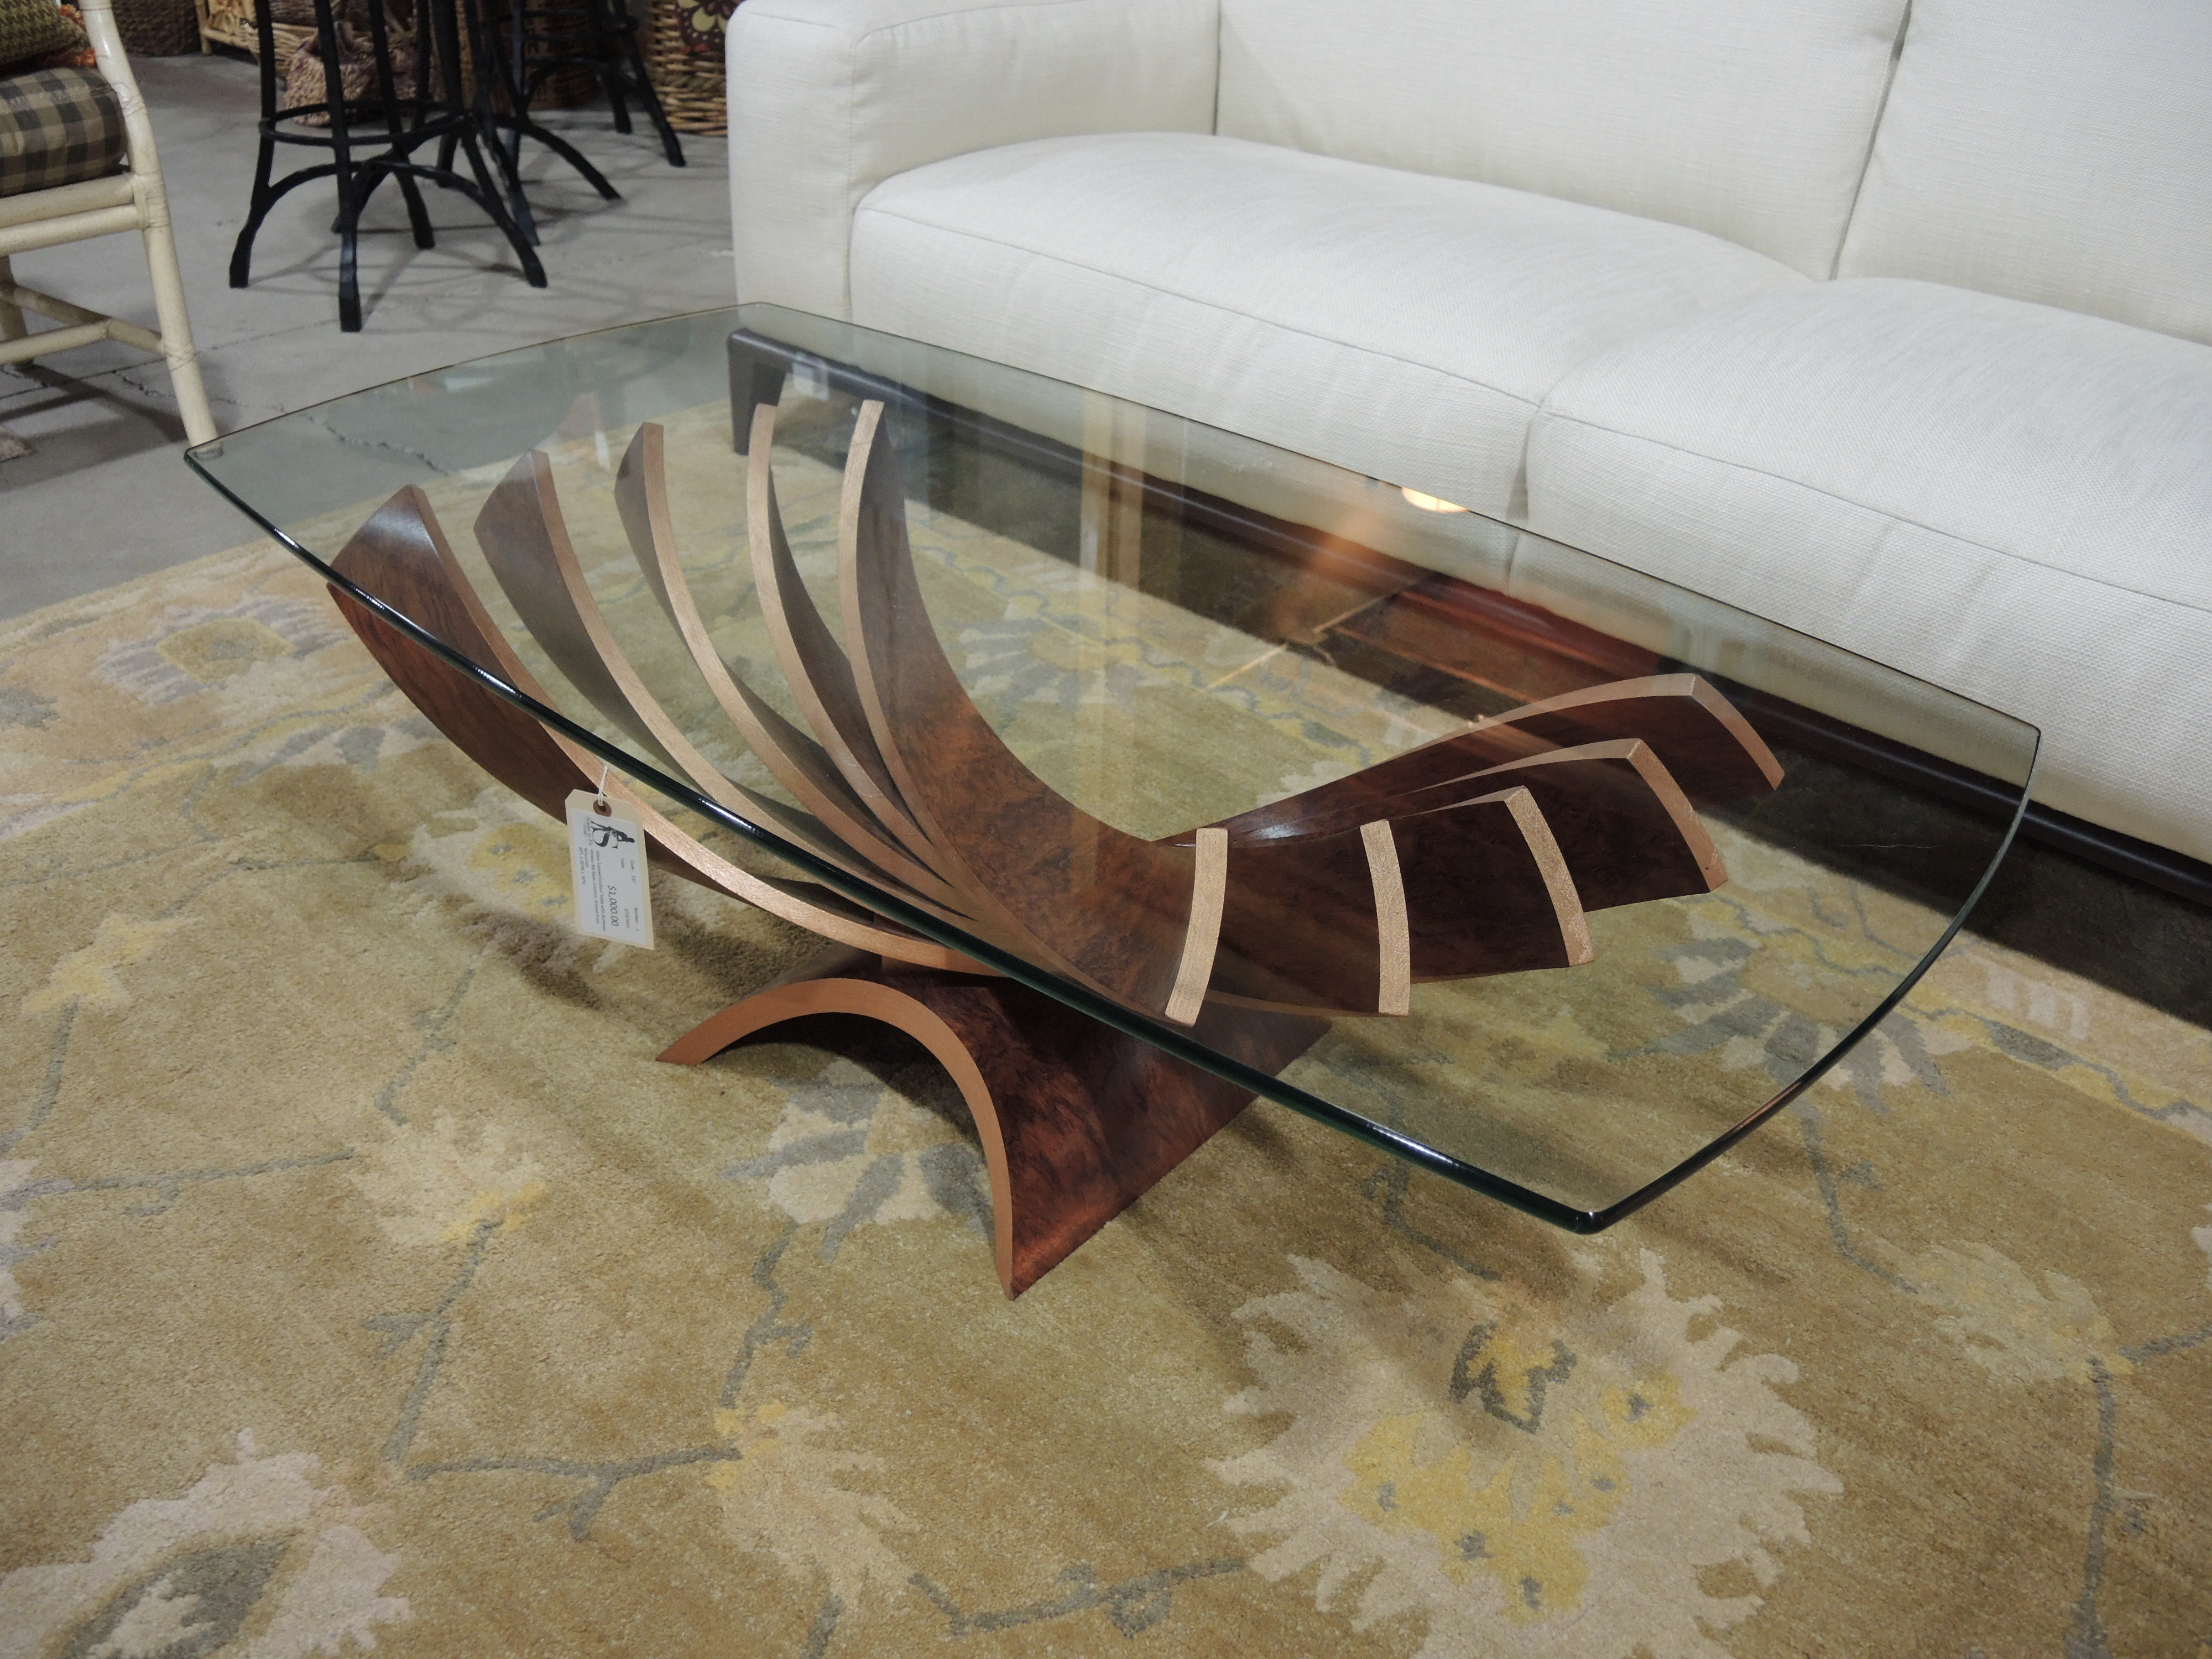 Handcrafted By A True Artist, We Have Received This Magnificent Glass Coffee  Table With Sleek, Bentwood U0027ribs.u0027 Straight From An Artisanu0027s Workshop In  ...